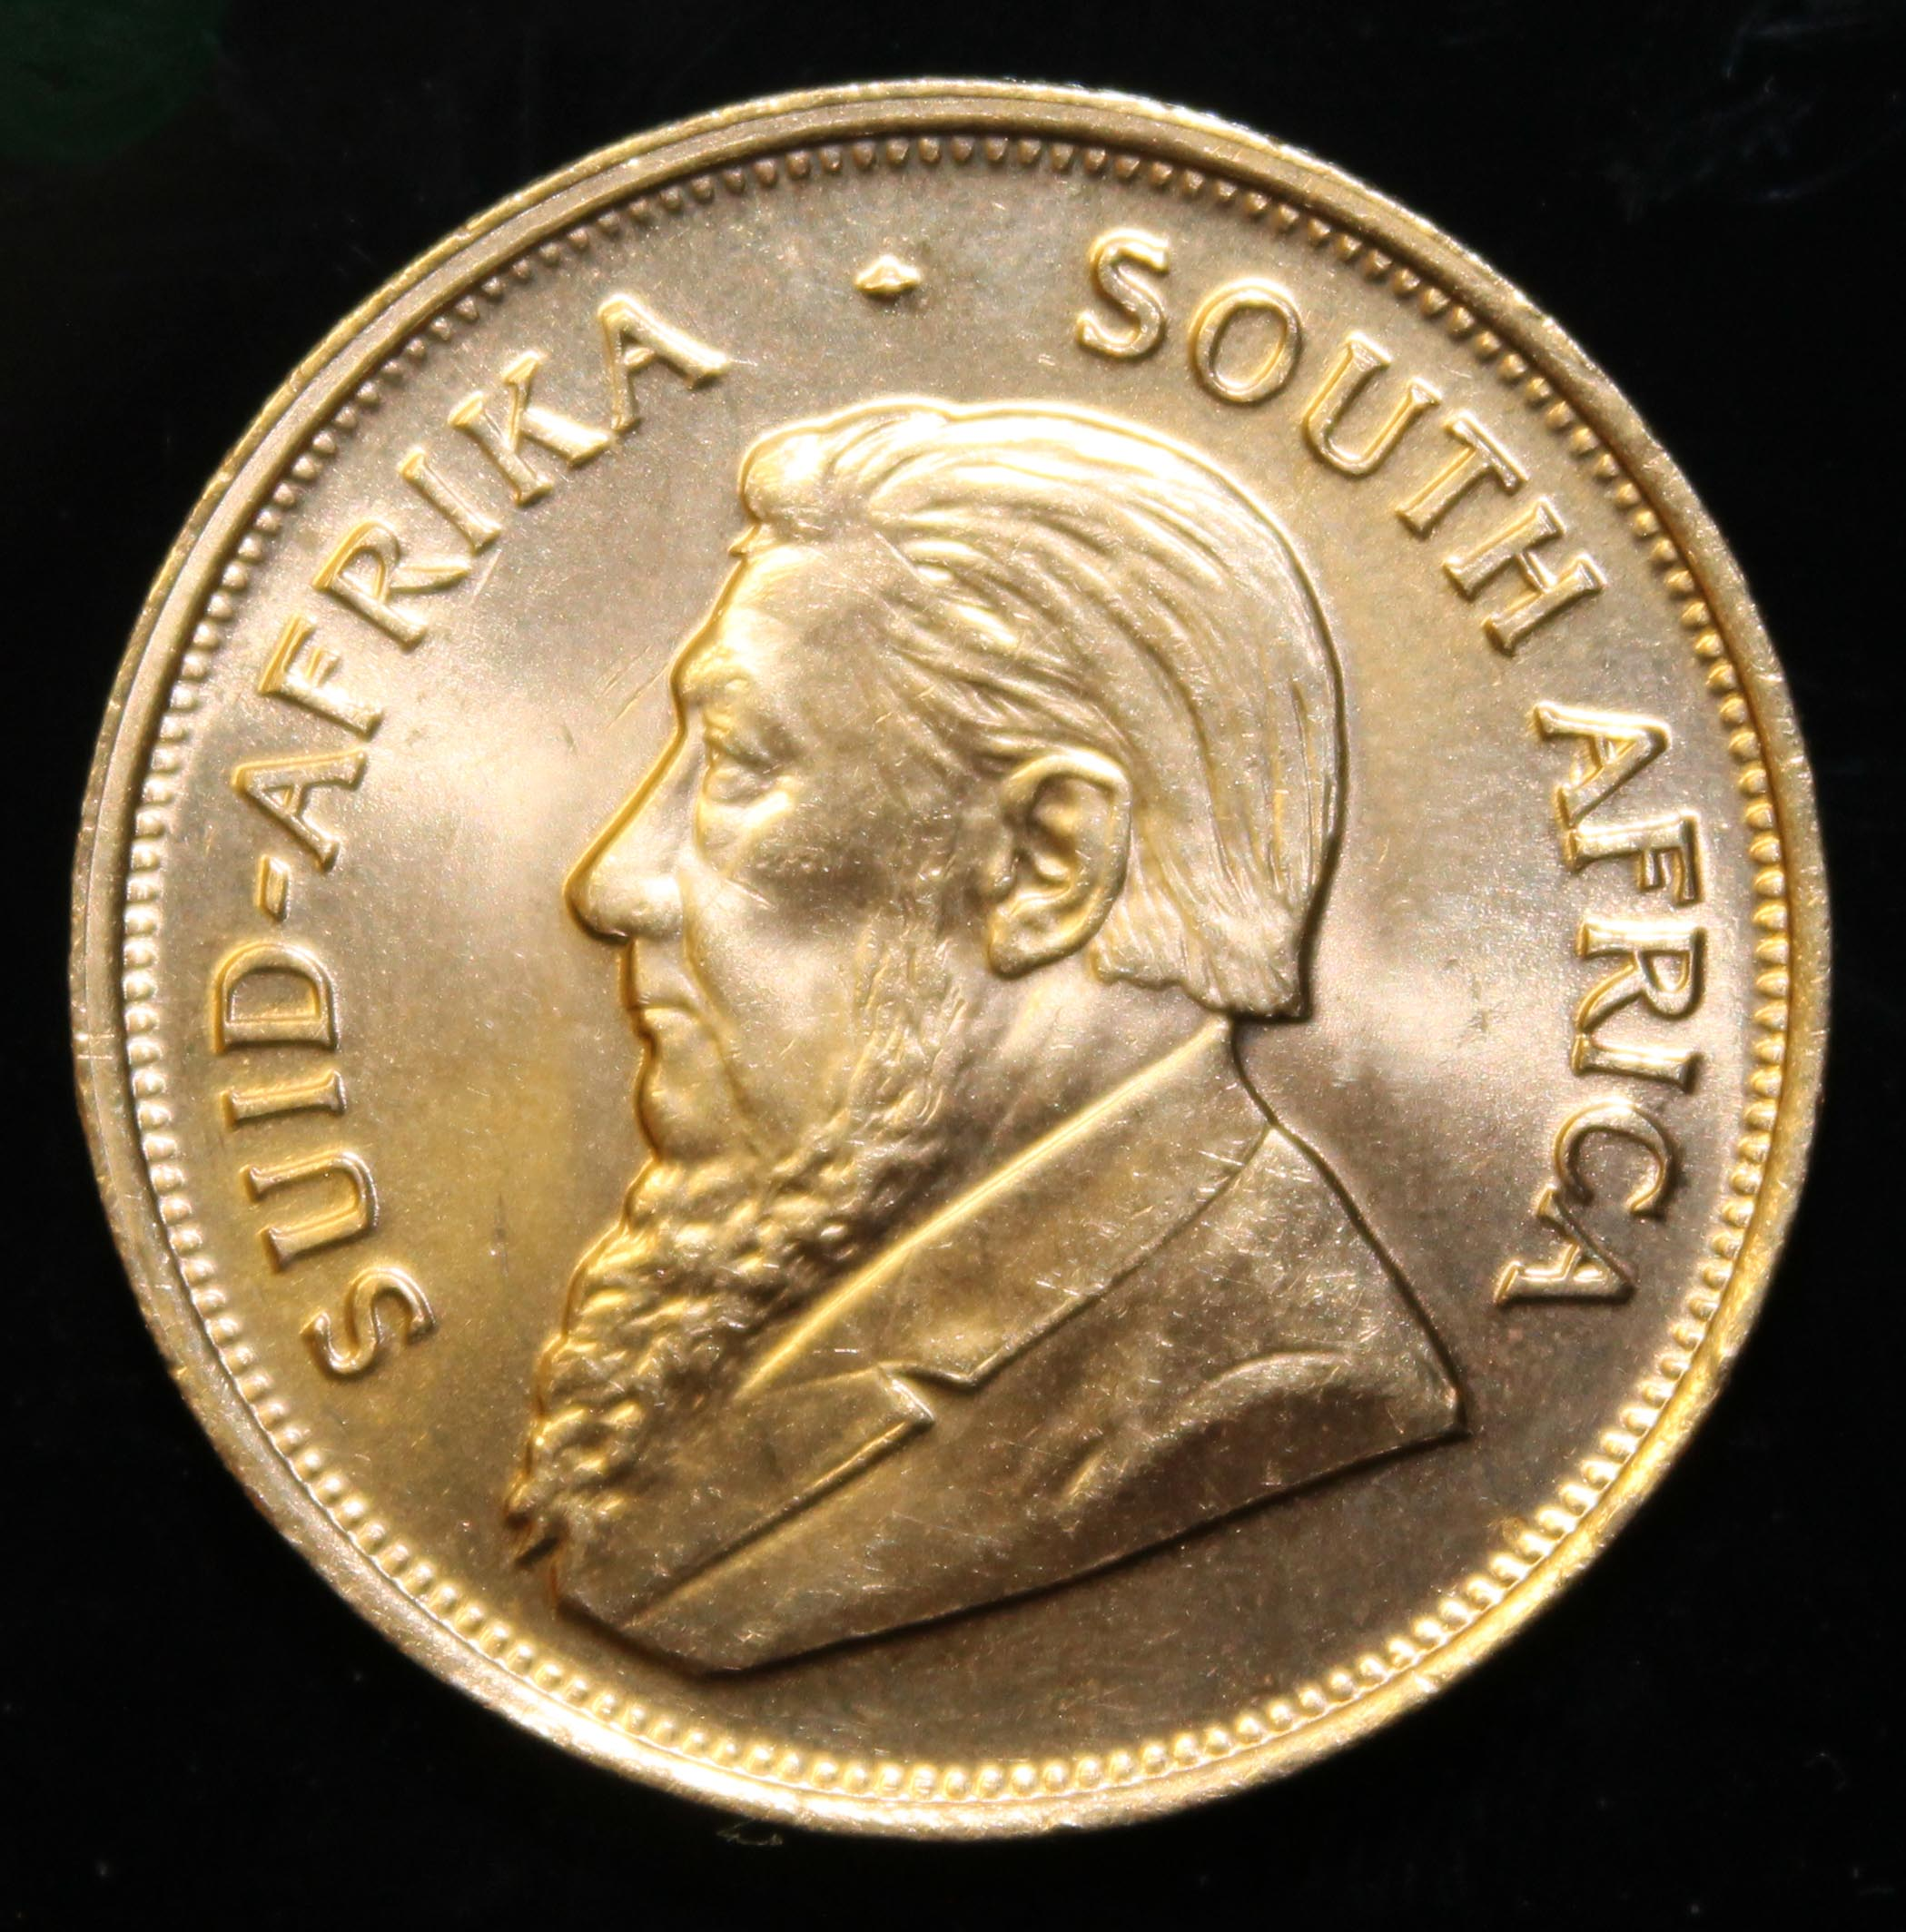 South Africa, 1976 Krugerrand, 1 oz. fine gold (91.67%) ONLY 10% BUYER'S PREMIUM (INCLUSIVE OF